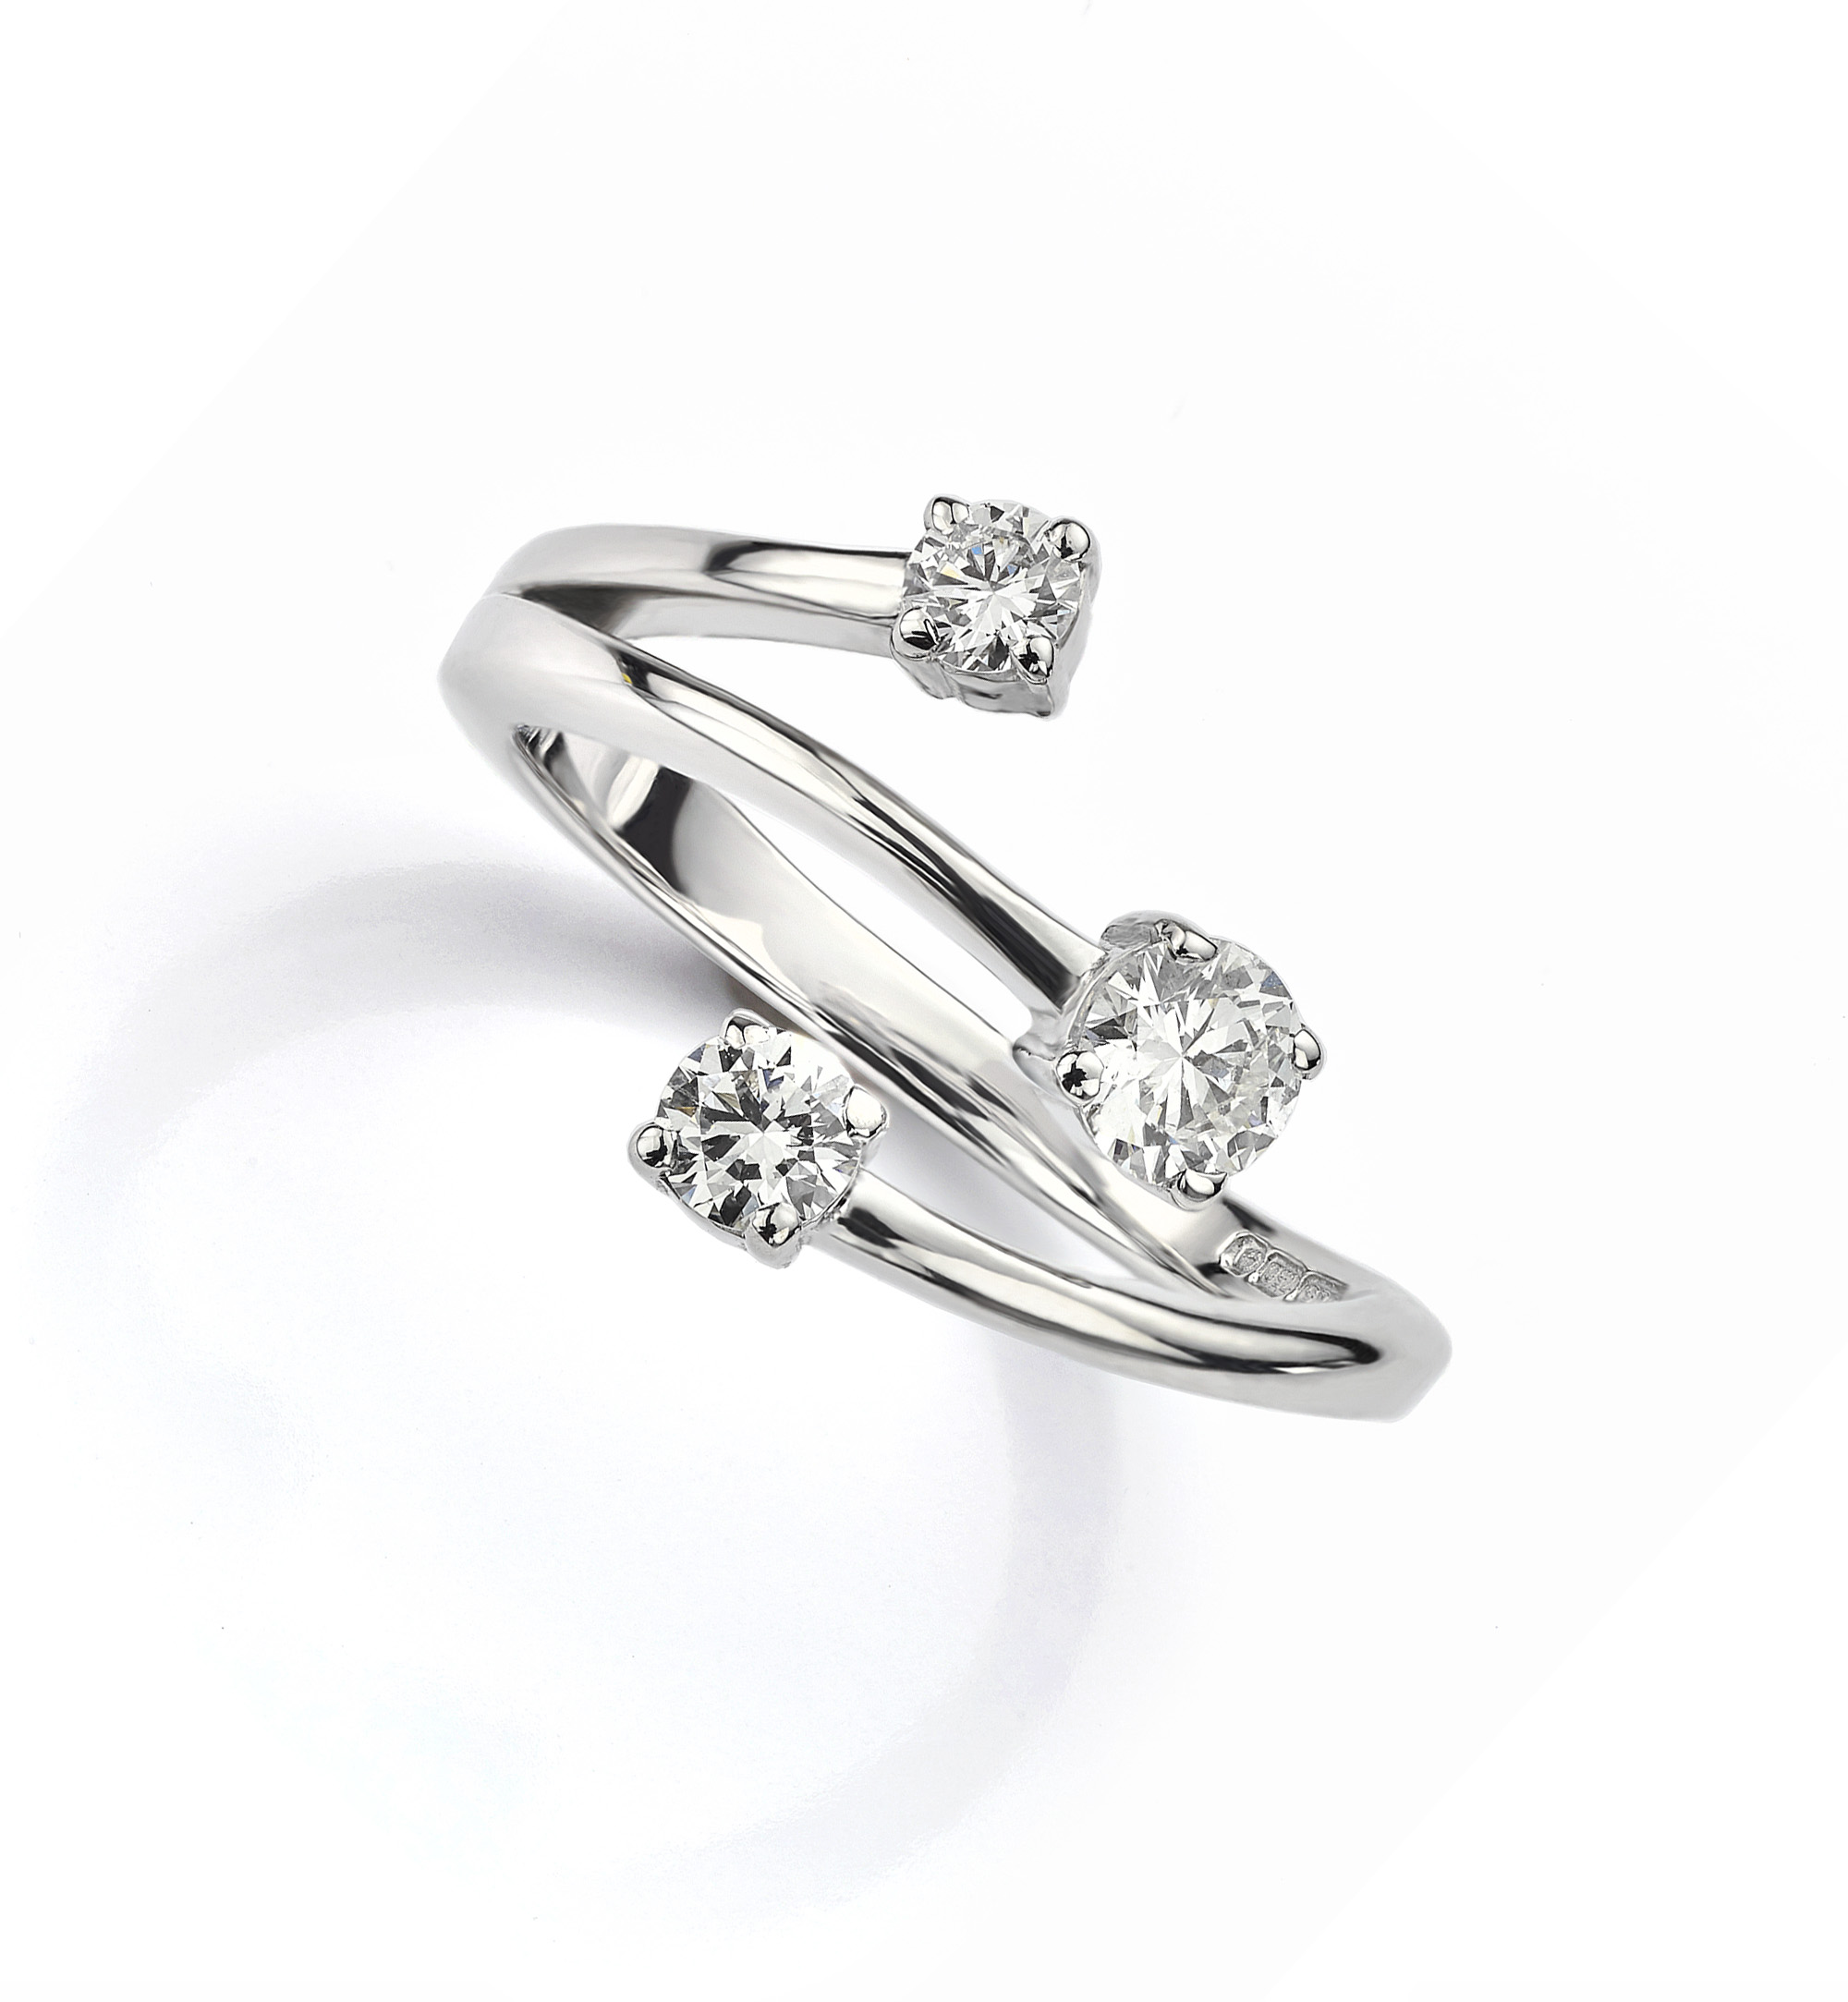 Bypass engagement rings example in 950 Platinum